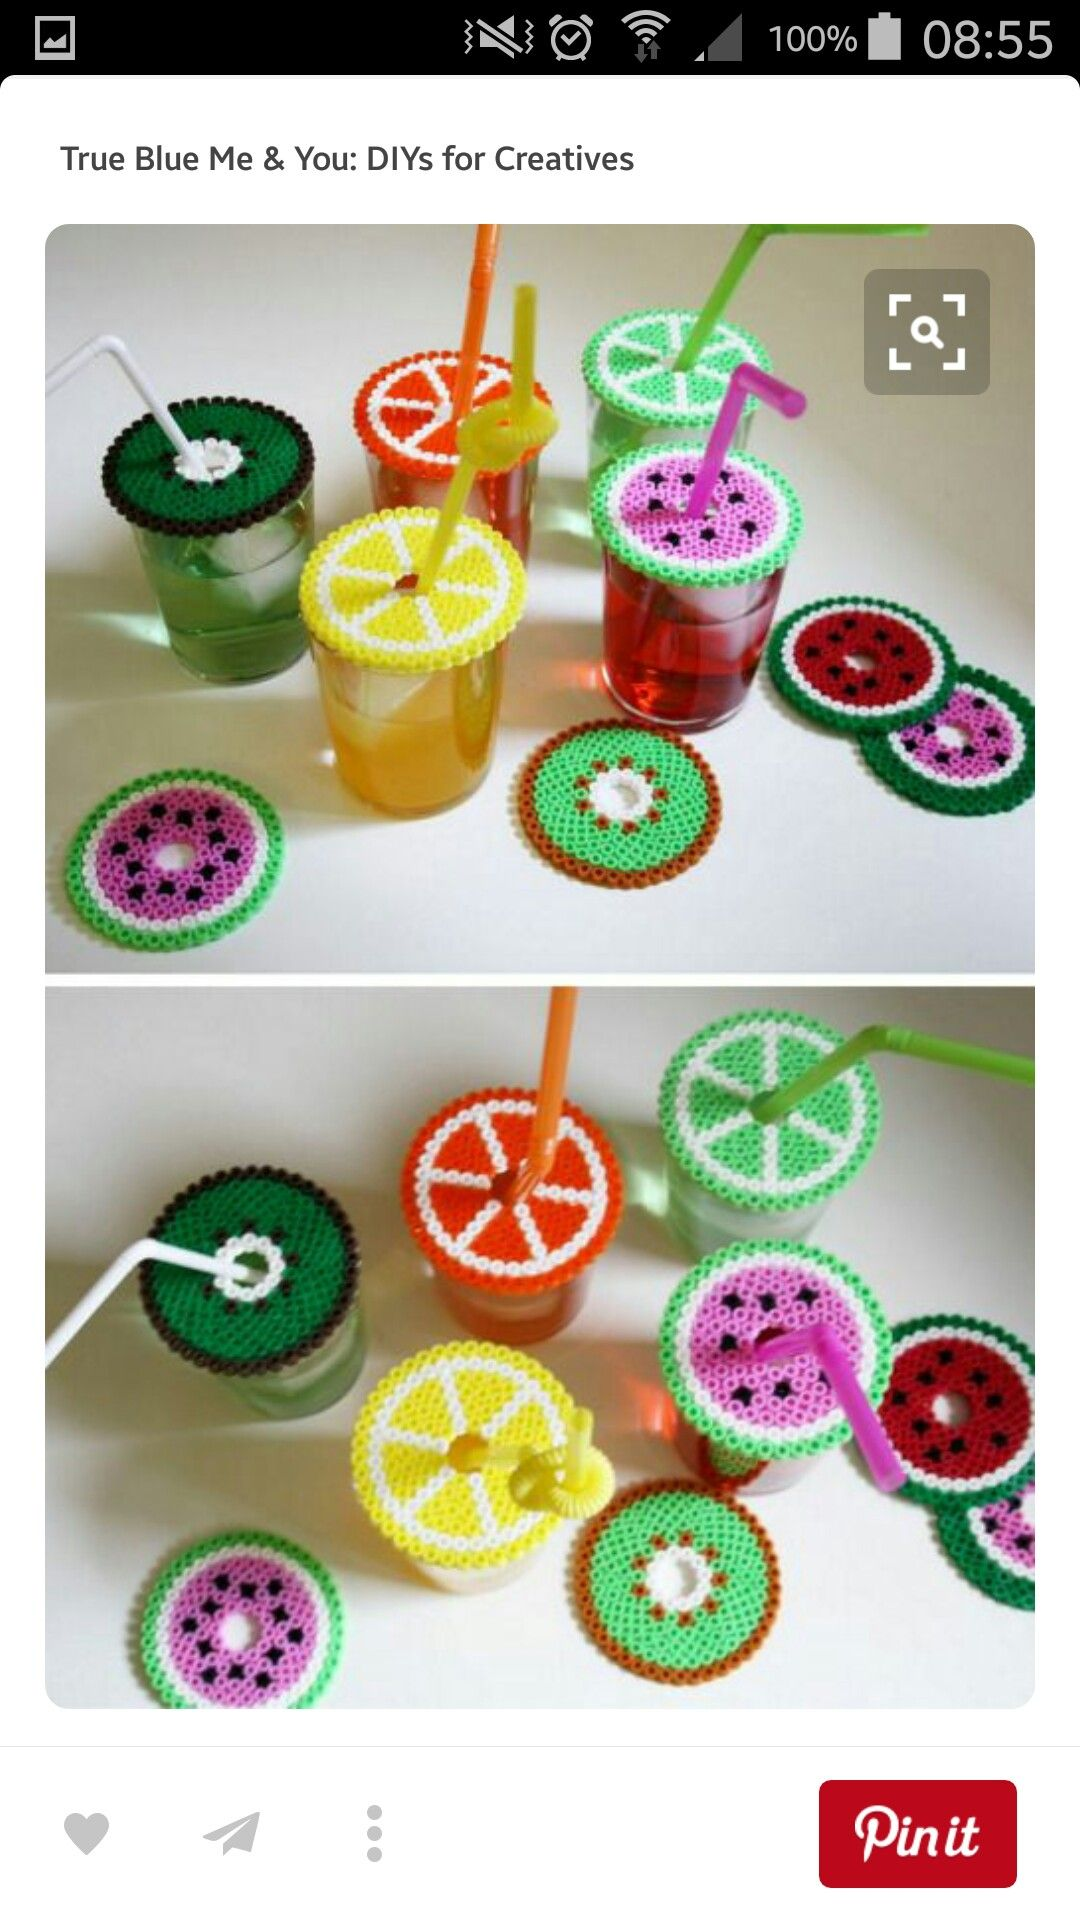 DIY Dual Duty Perler Beads Coasters Or Drink Covers Tutorial From LoppiThese Can Be Made Out Of Hama